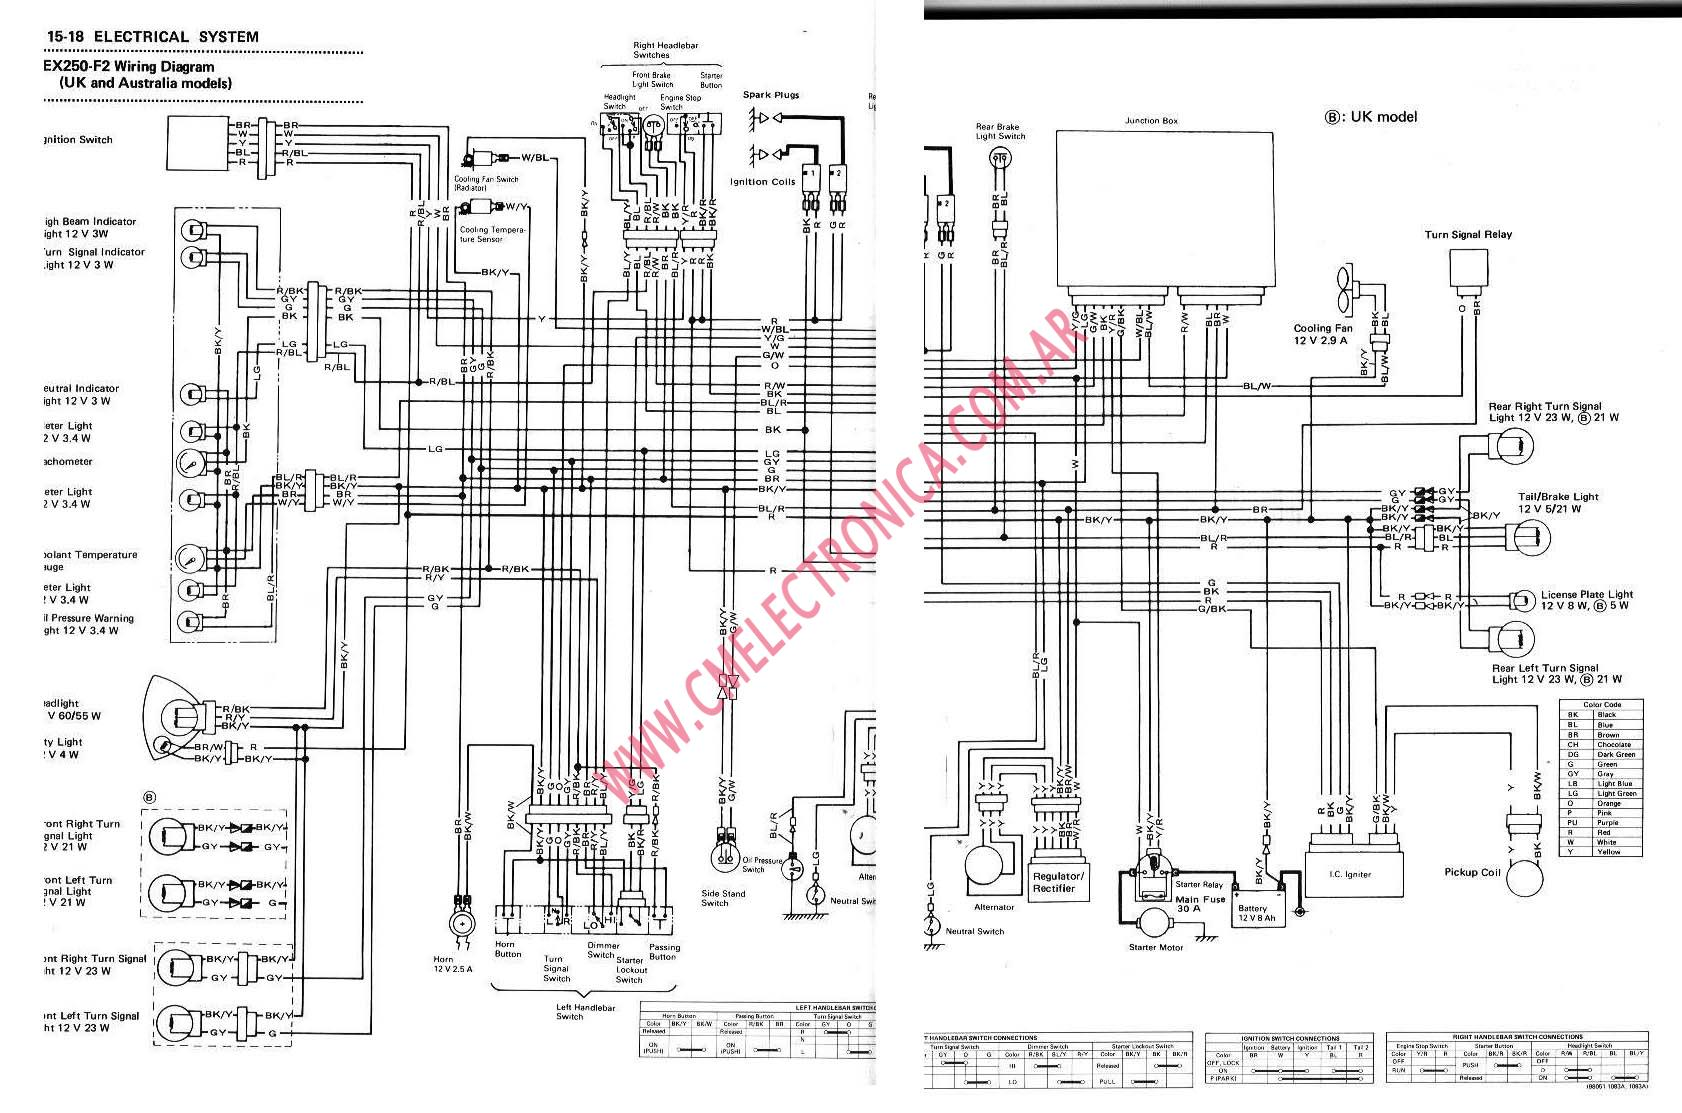 diagram of kawasaki atv parts 1995 klf300c7 bayou 300 4x4 handlebar